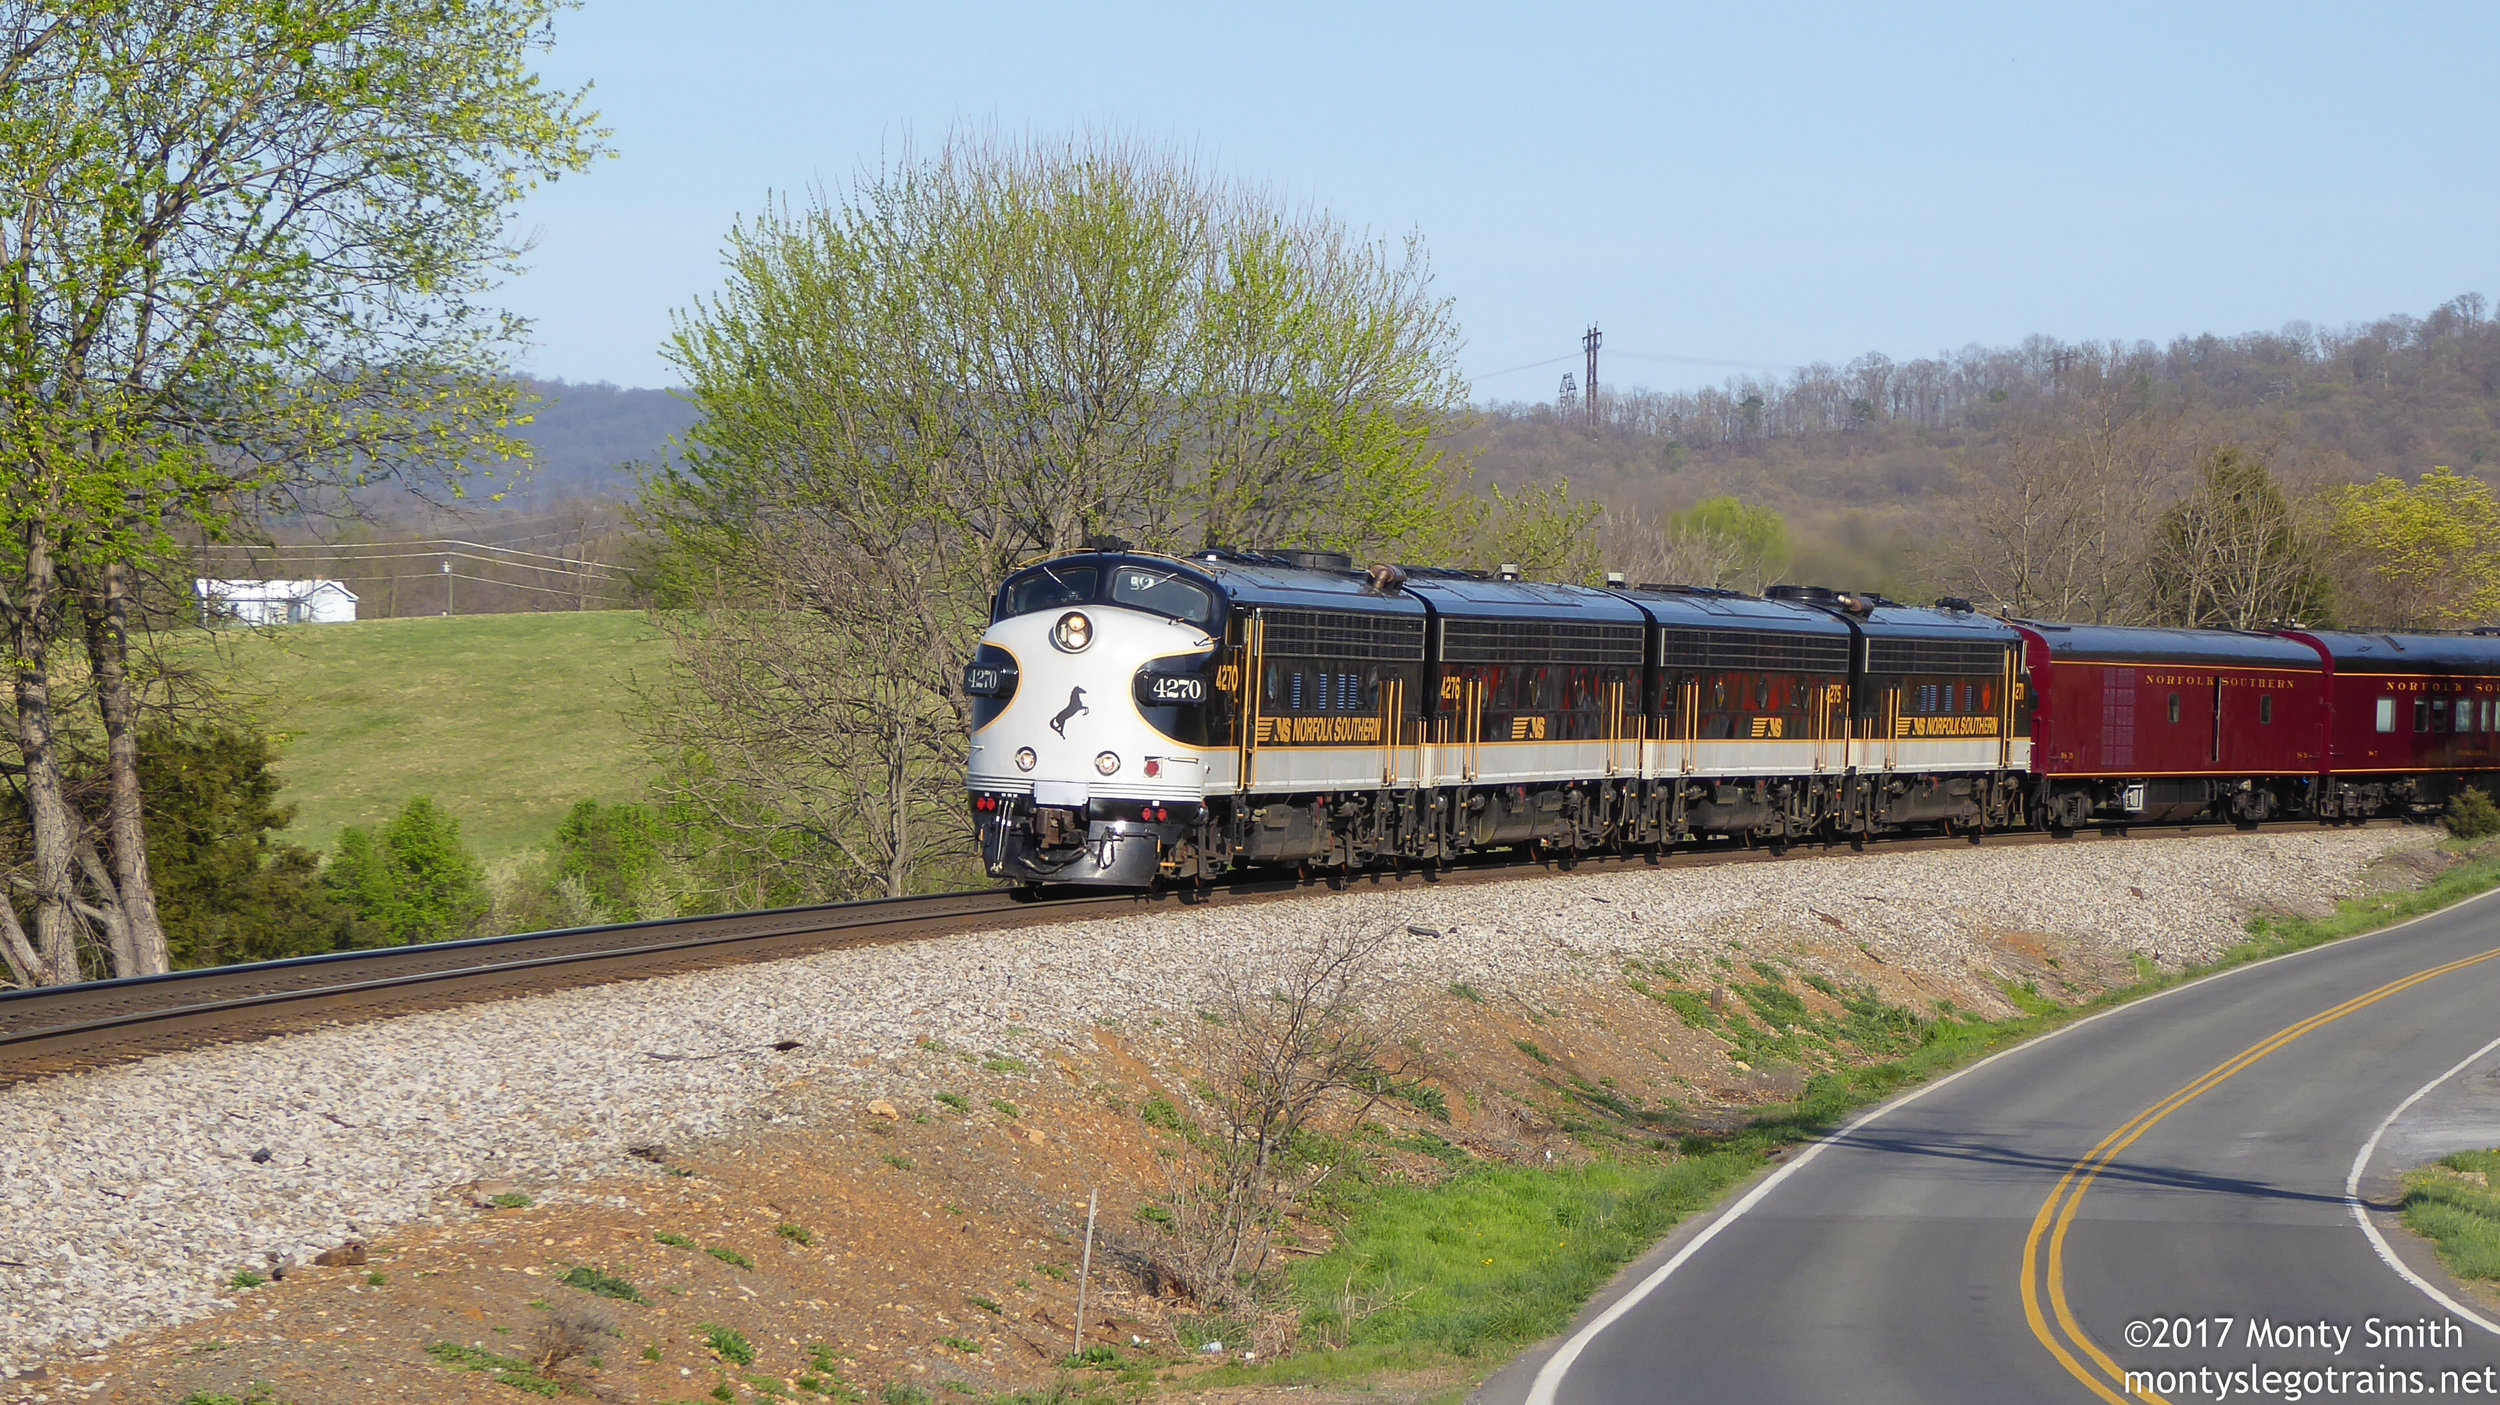 A photograph I've been waiting a decade to take: Norfolk Southern's Office Car Special through the Virginia countryside.